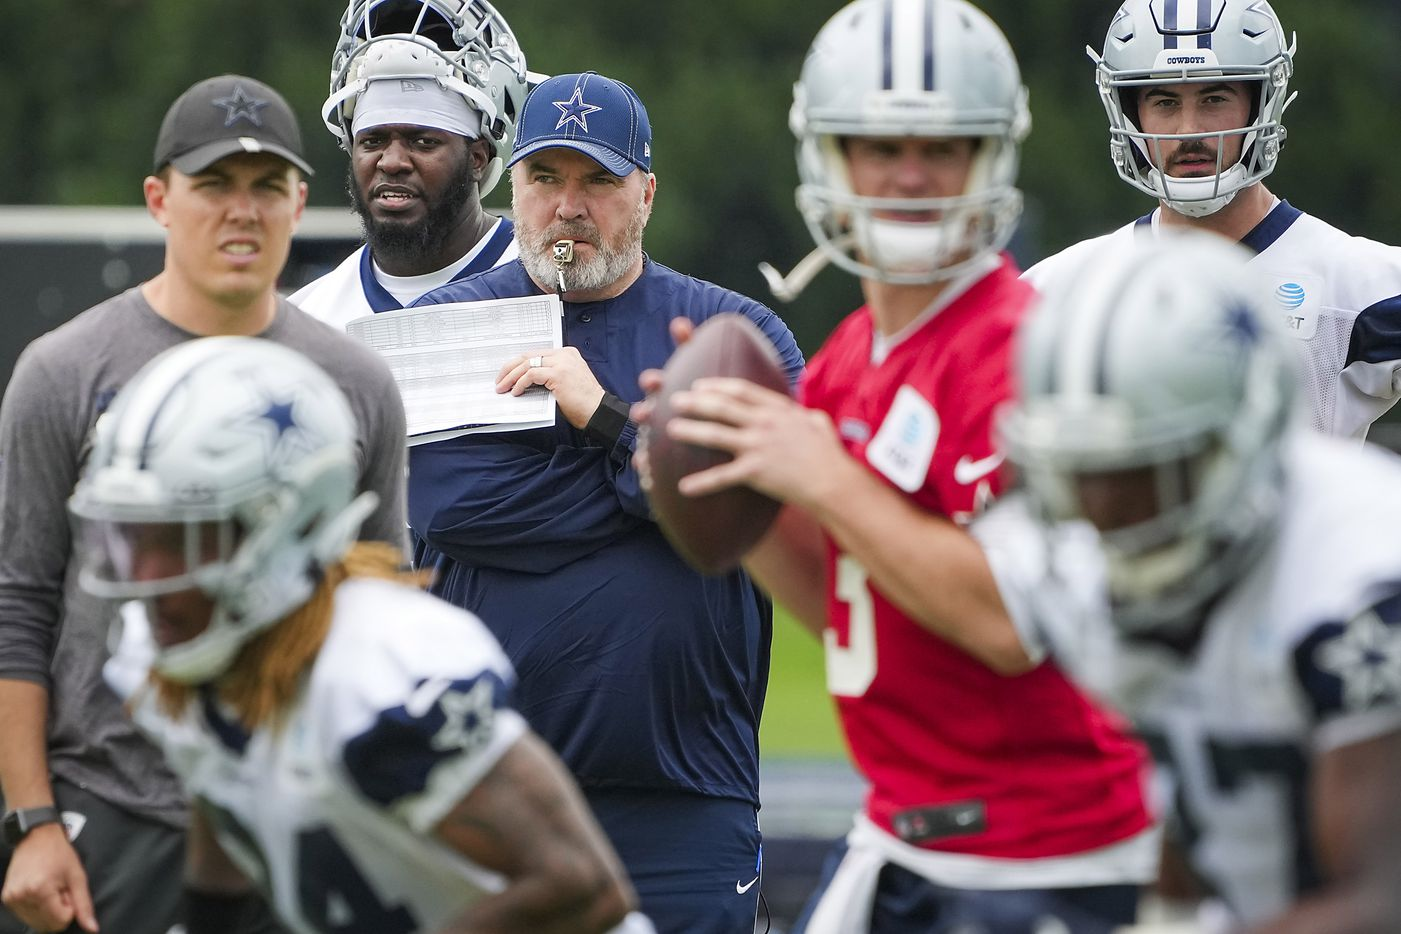 Dallas Cowboys head coach Mike McCarthy )(center) and offensive coordinator Kellen Moore (left) watch quarterback Garrett Gilbert (3) run the offense in a drill during a minicamp practice at The Star on Wednesday, June 9, 2021, in Frisco. (Smiley N. Pool/The Dallas Morning News)